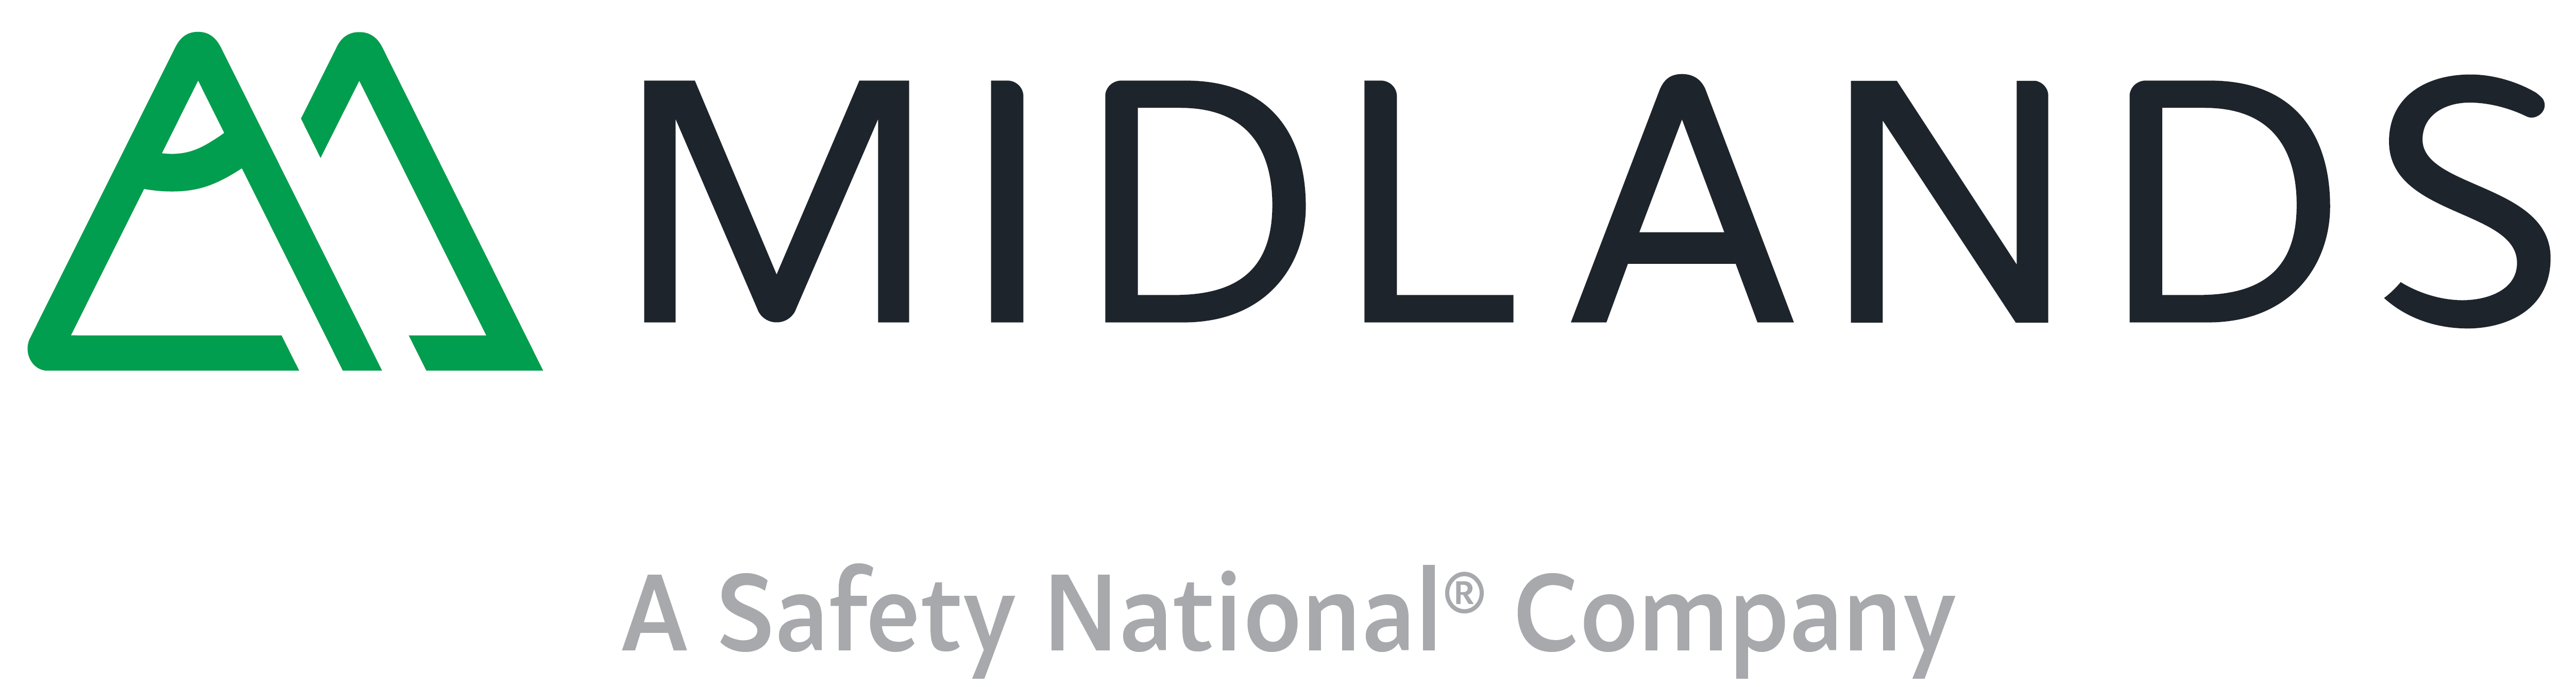 Midlands Logo Safety 2019 Cropped White Background.jpg